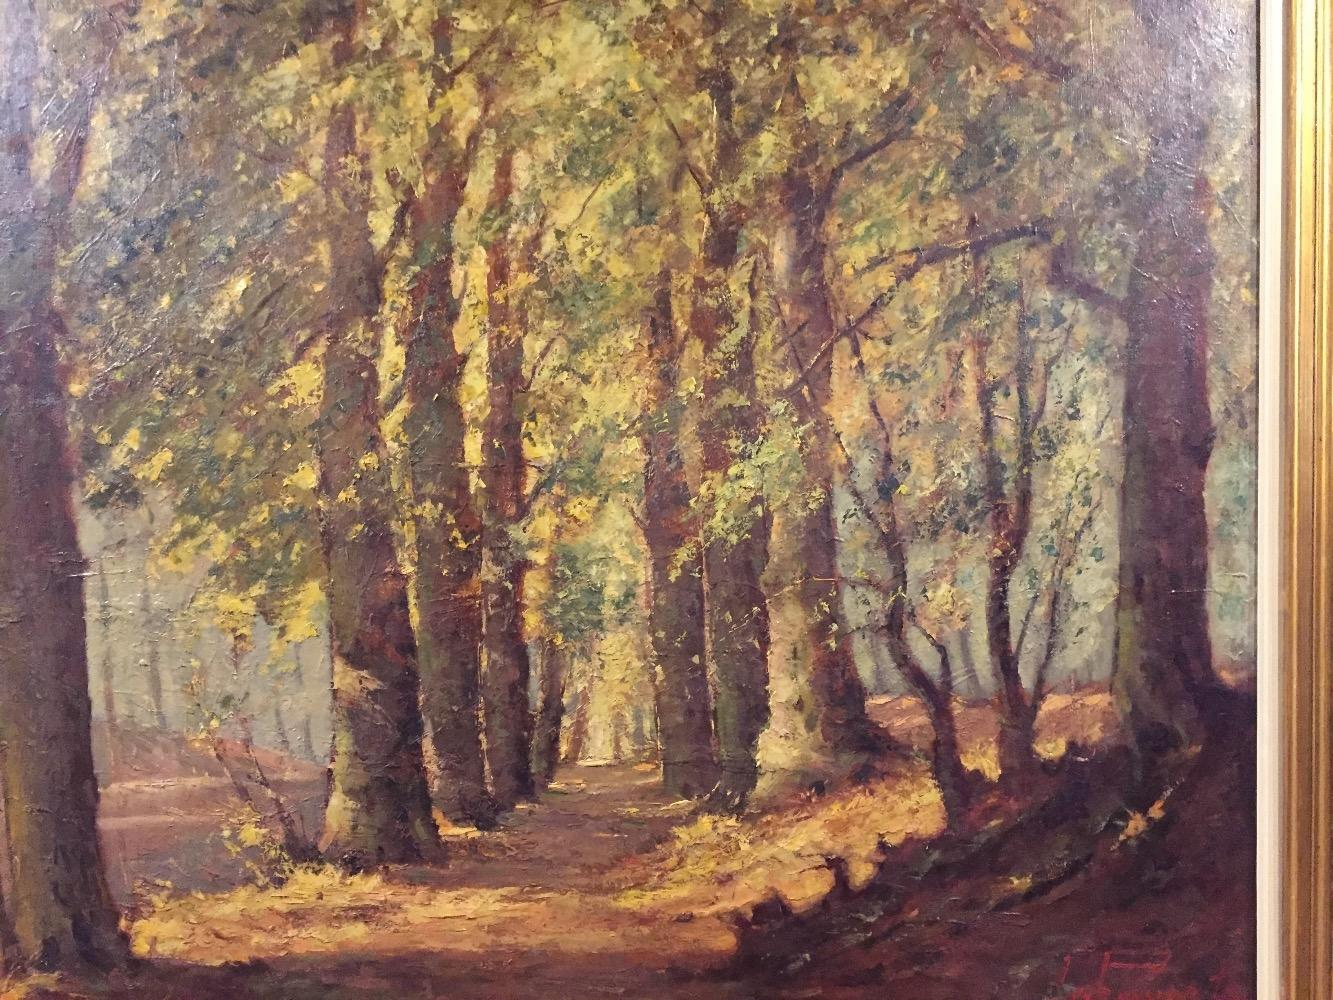 Forest in the summertime